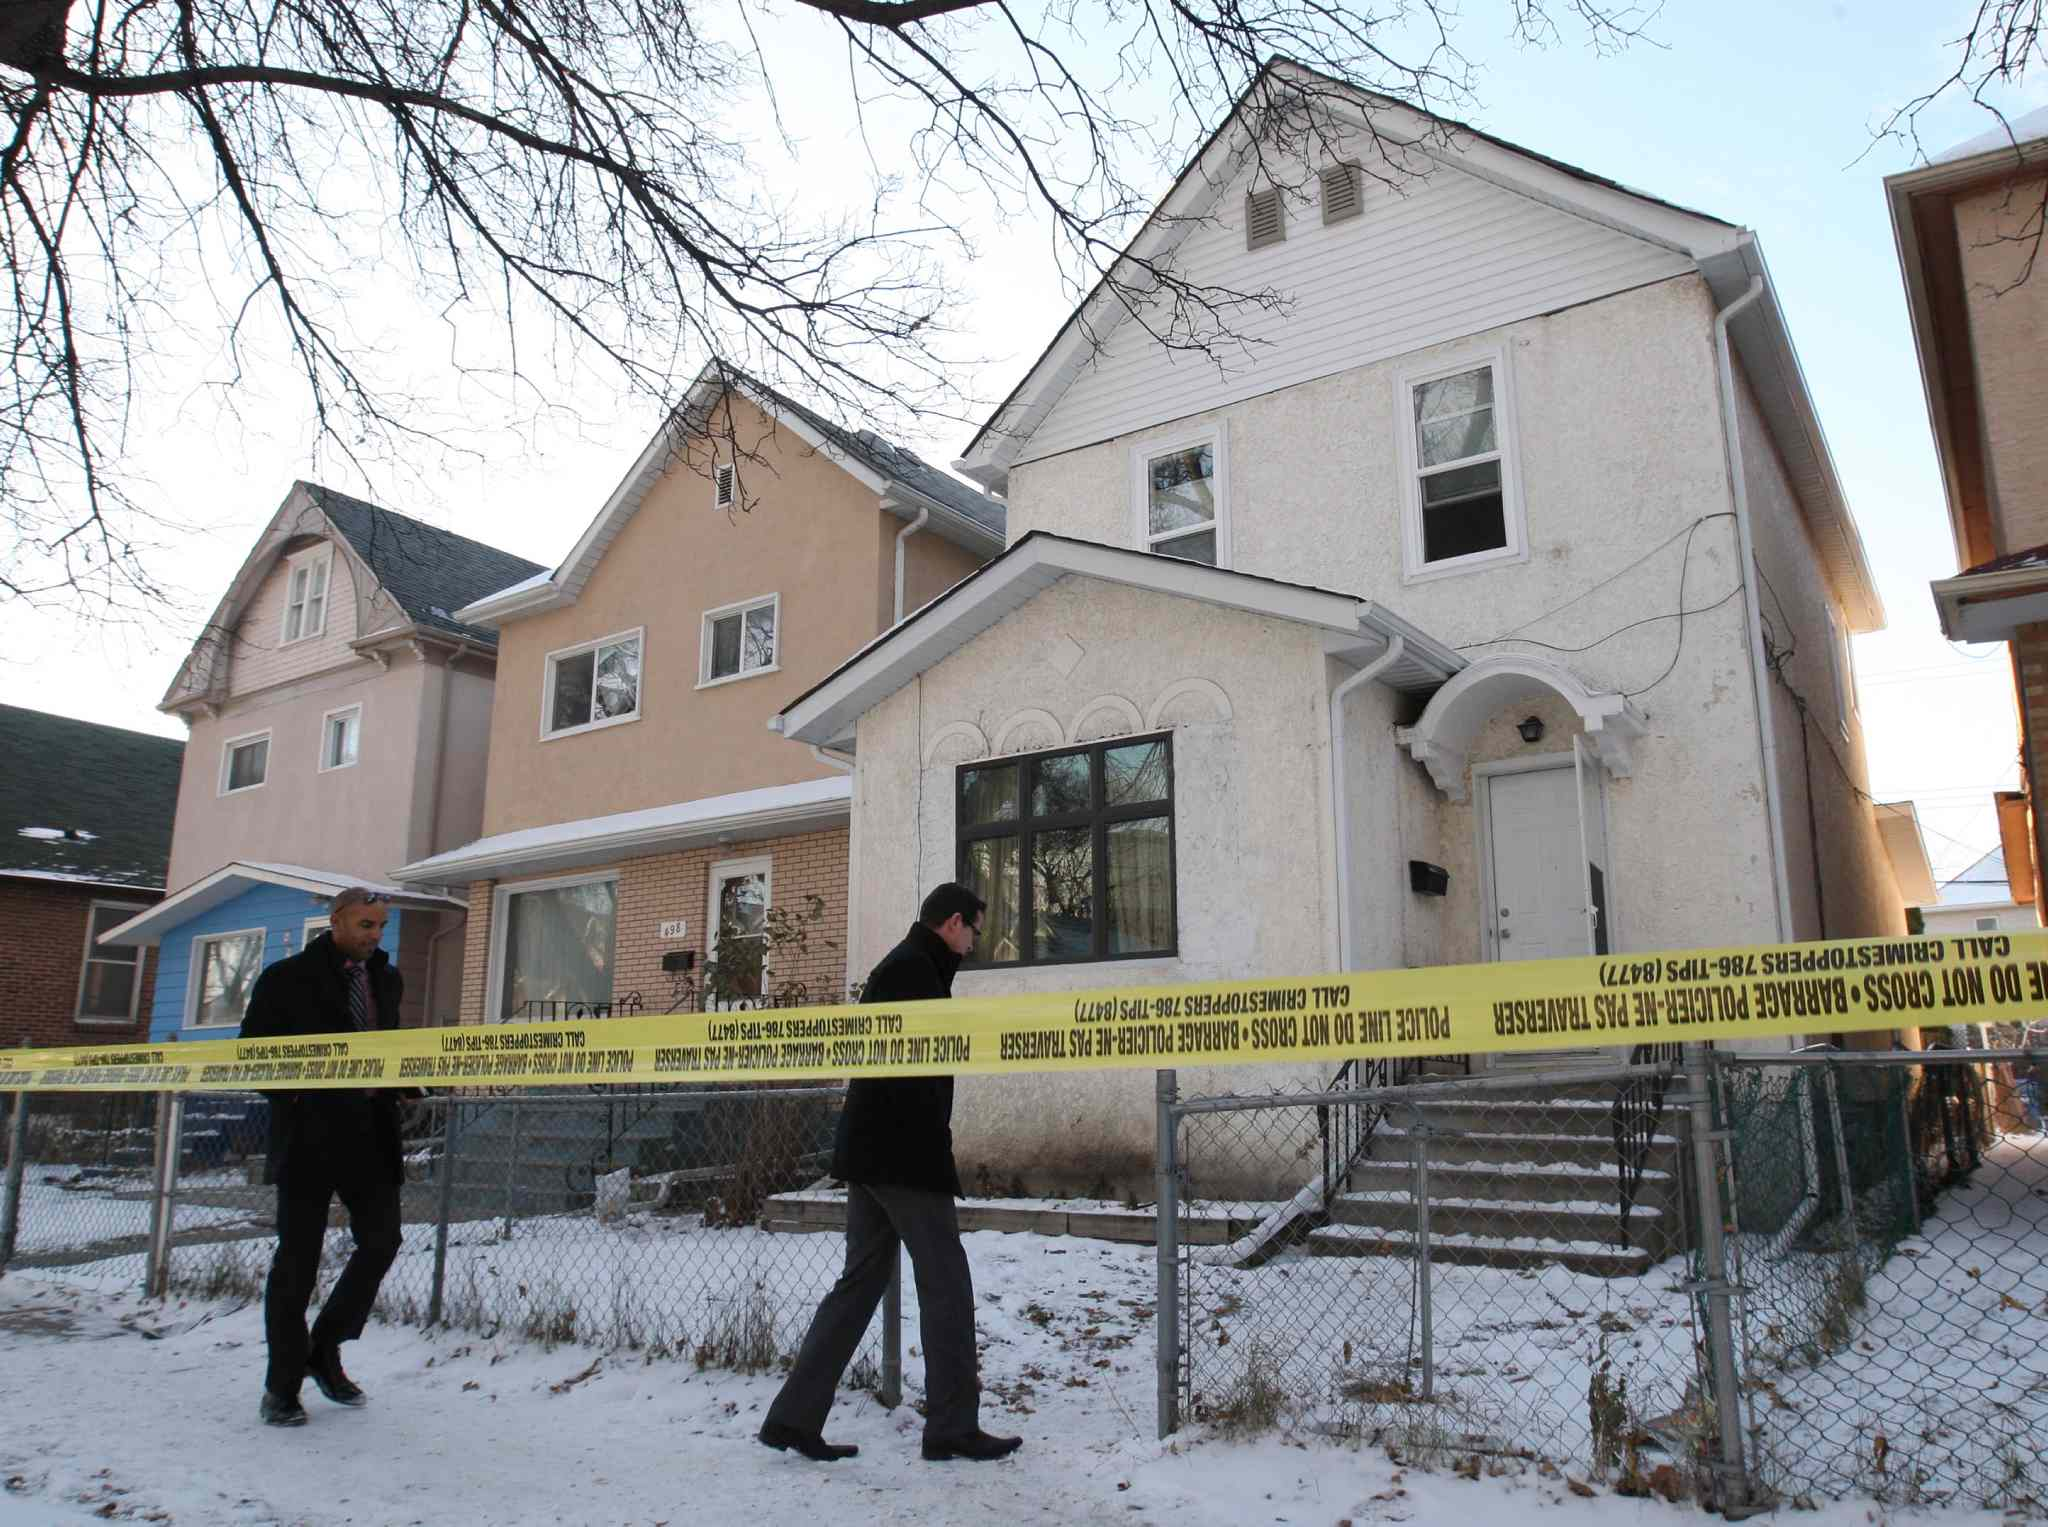 Winnipeg police arrive at a crime scene at a rooming house at 500 Victor Street in 2014. A 44-year-old woman was taken to hospital with critical stab wounds where she later died. Winnipeg had a homicide rate of 3.29 per 100,000 people, which ranked second only to Thunder Bay (9.04) among Canadian cities with a population of at least 100,000.